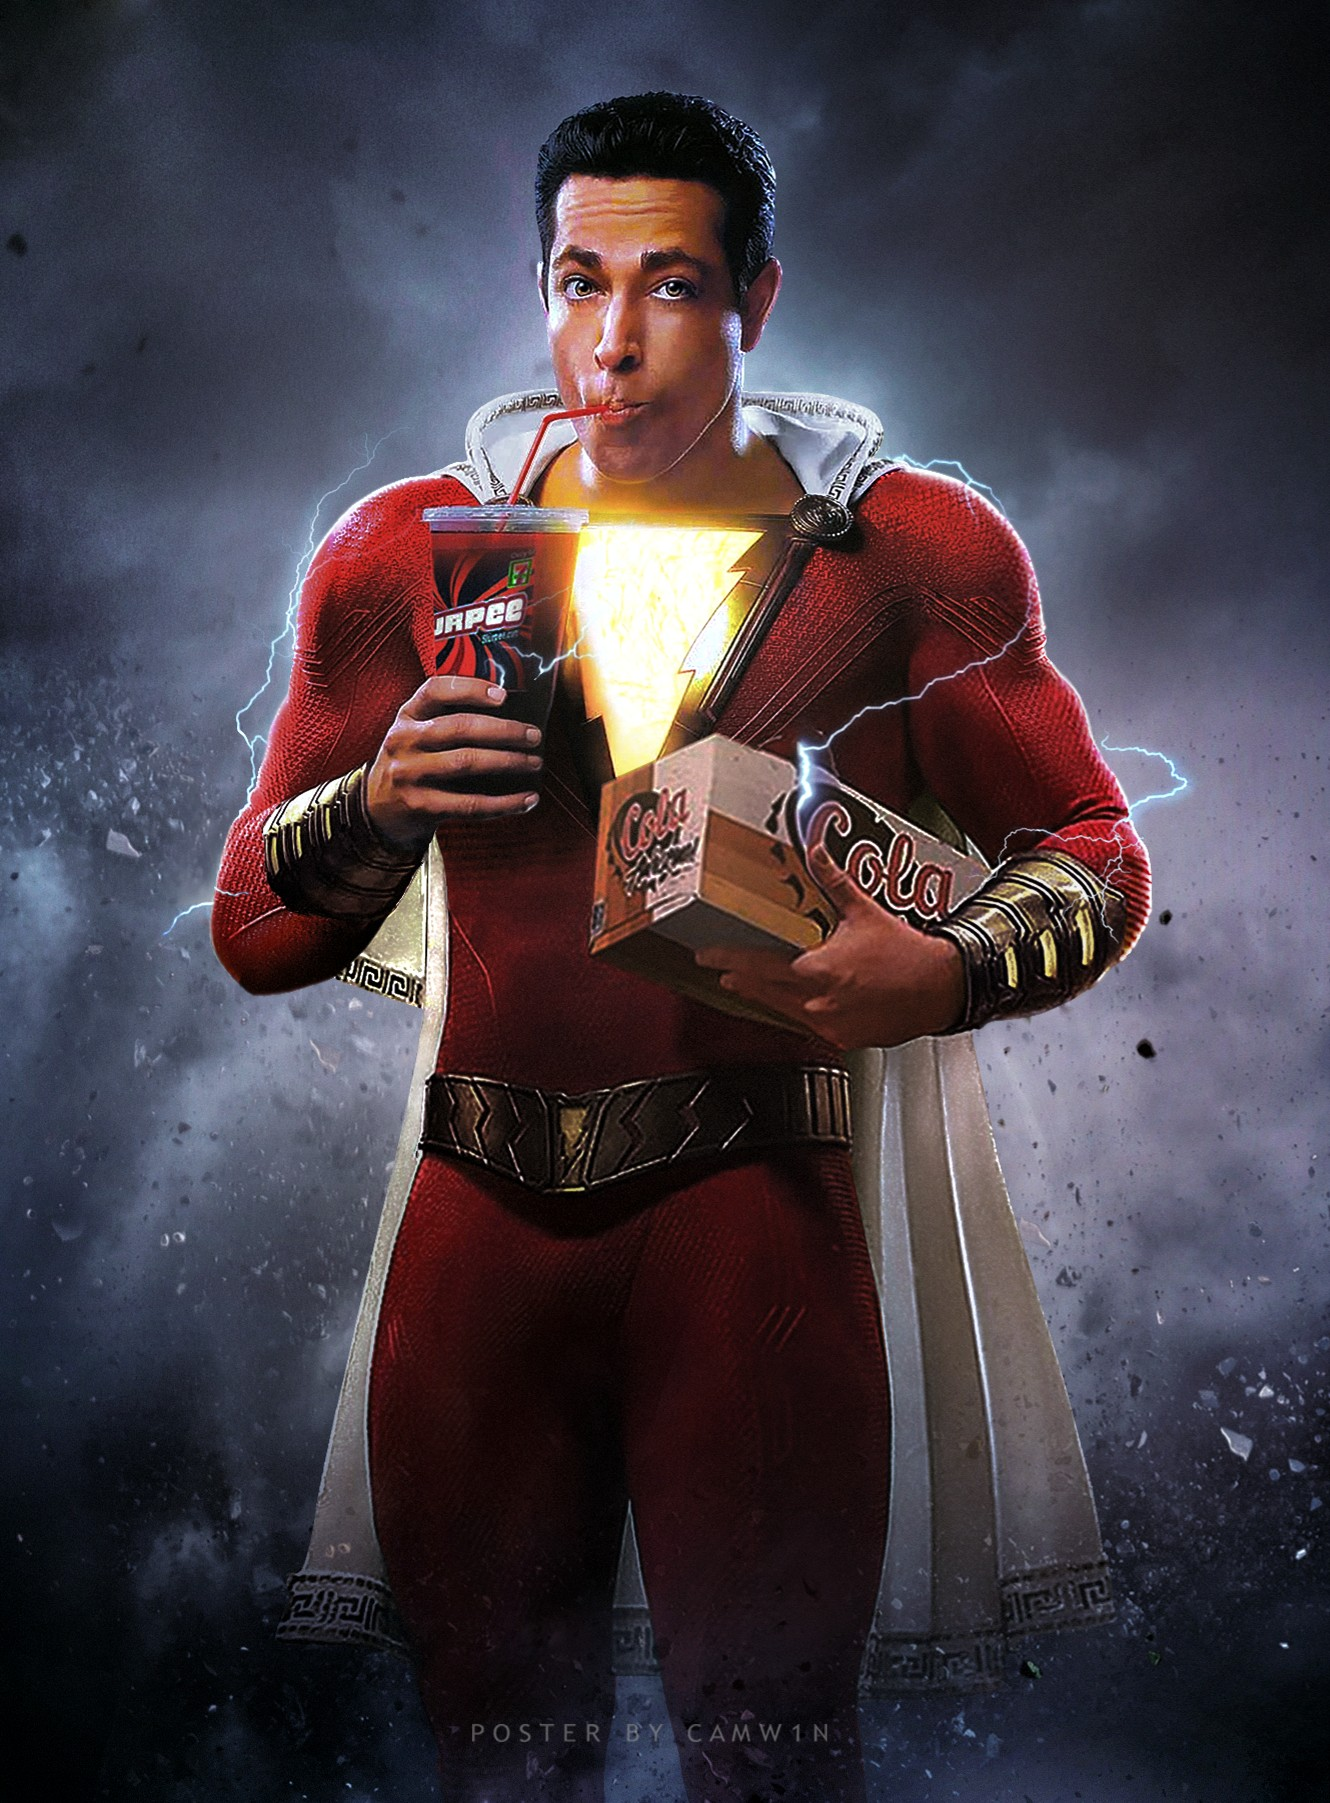 Shazam! (2019) Fan Poster by CAMW1N on DeviantArt